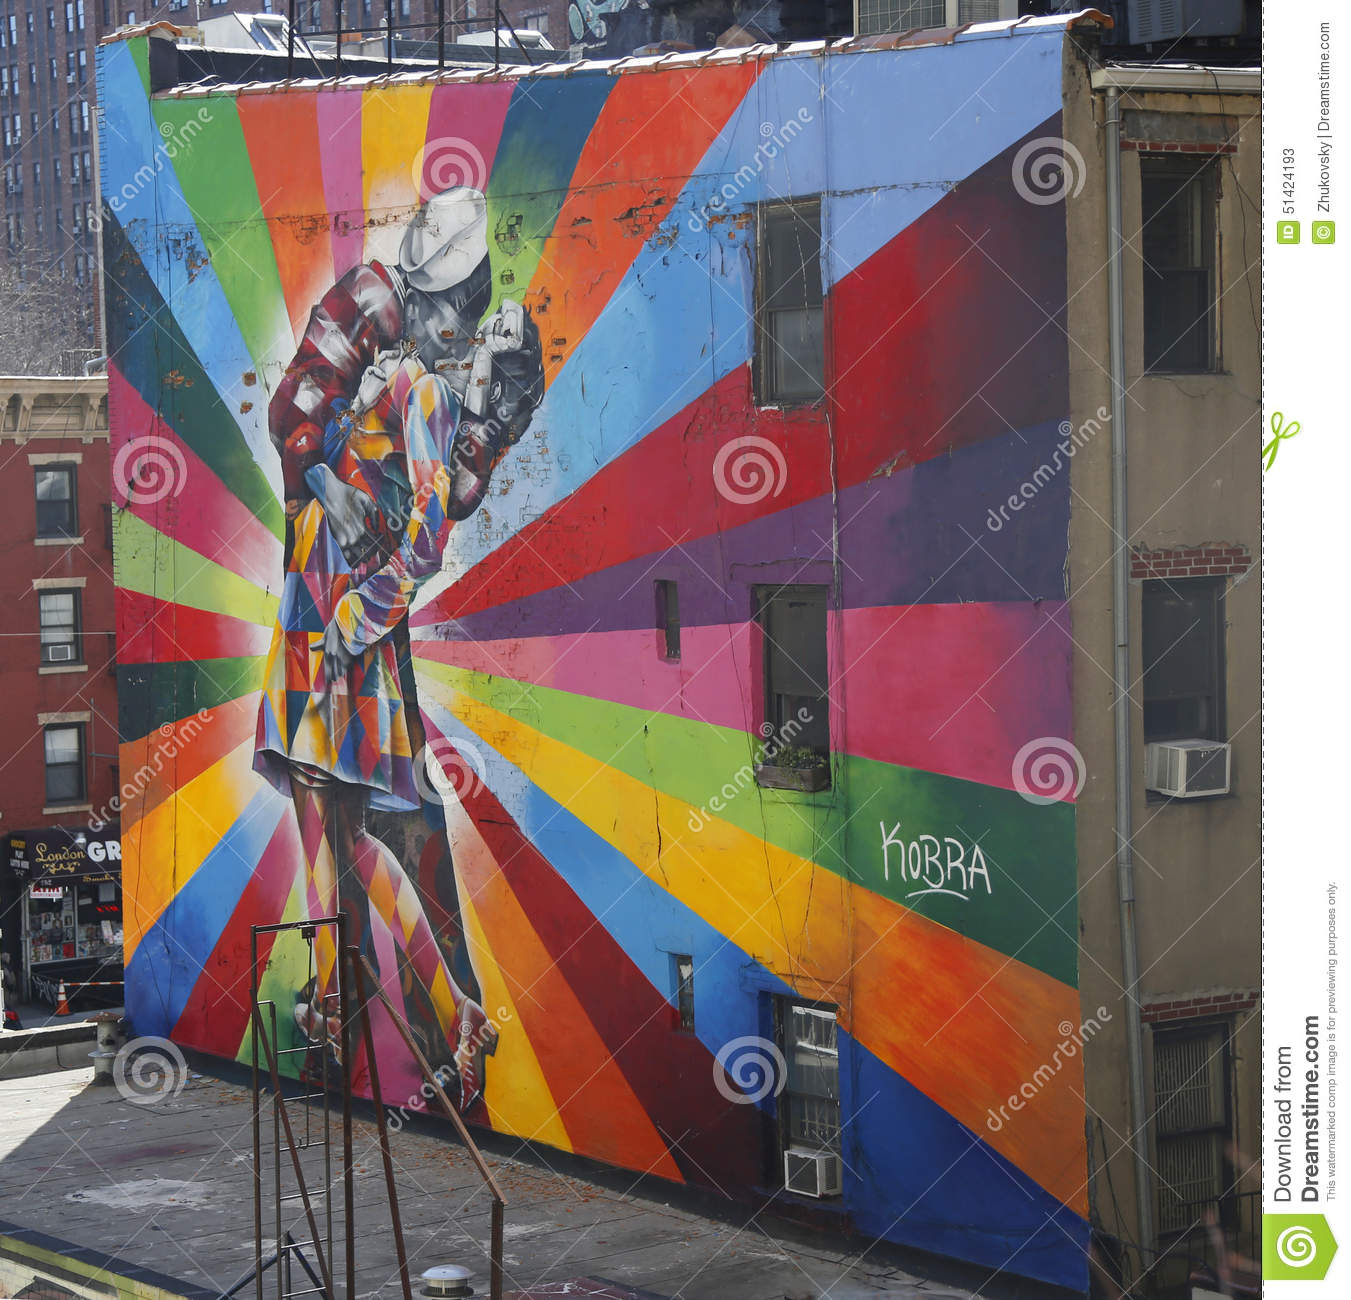 Mural art by brazilian mural artist eduardo kobra in for Mural eduardo kobra